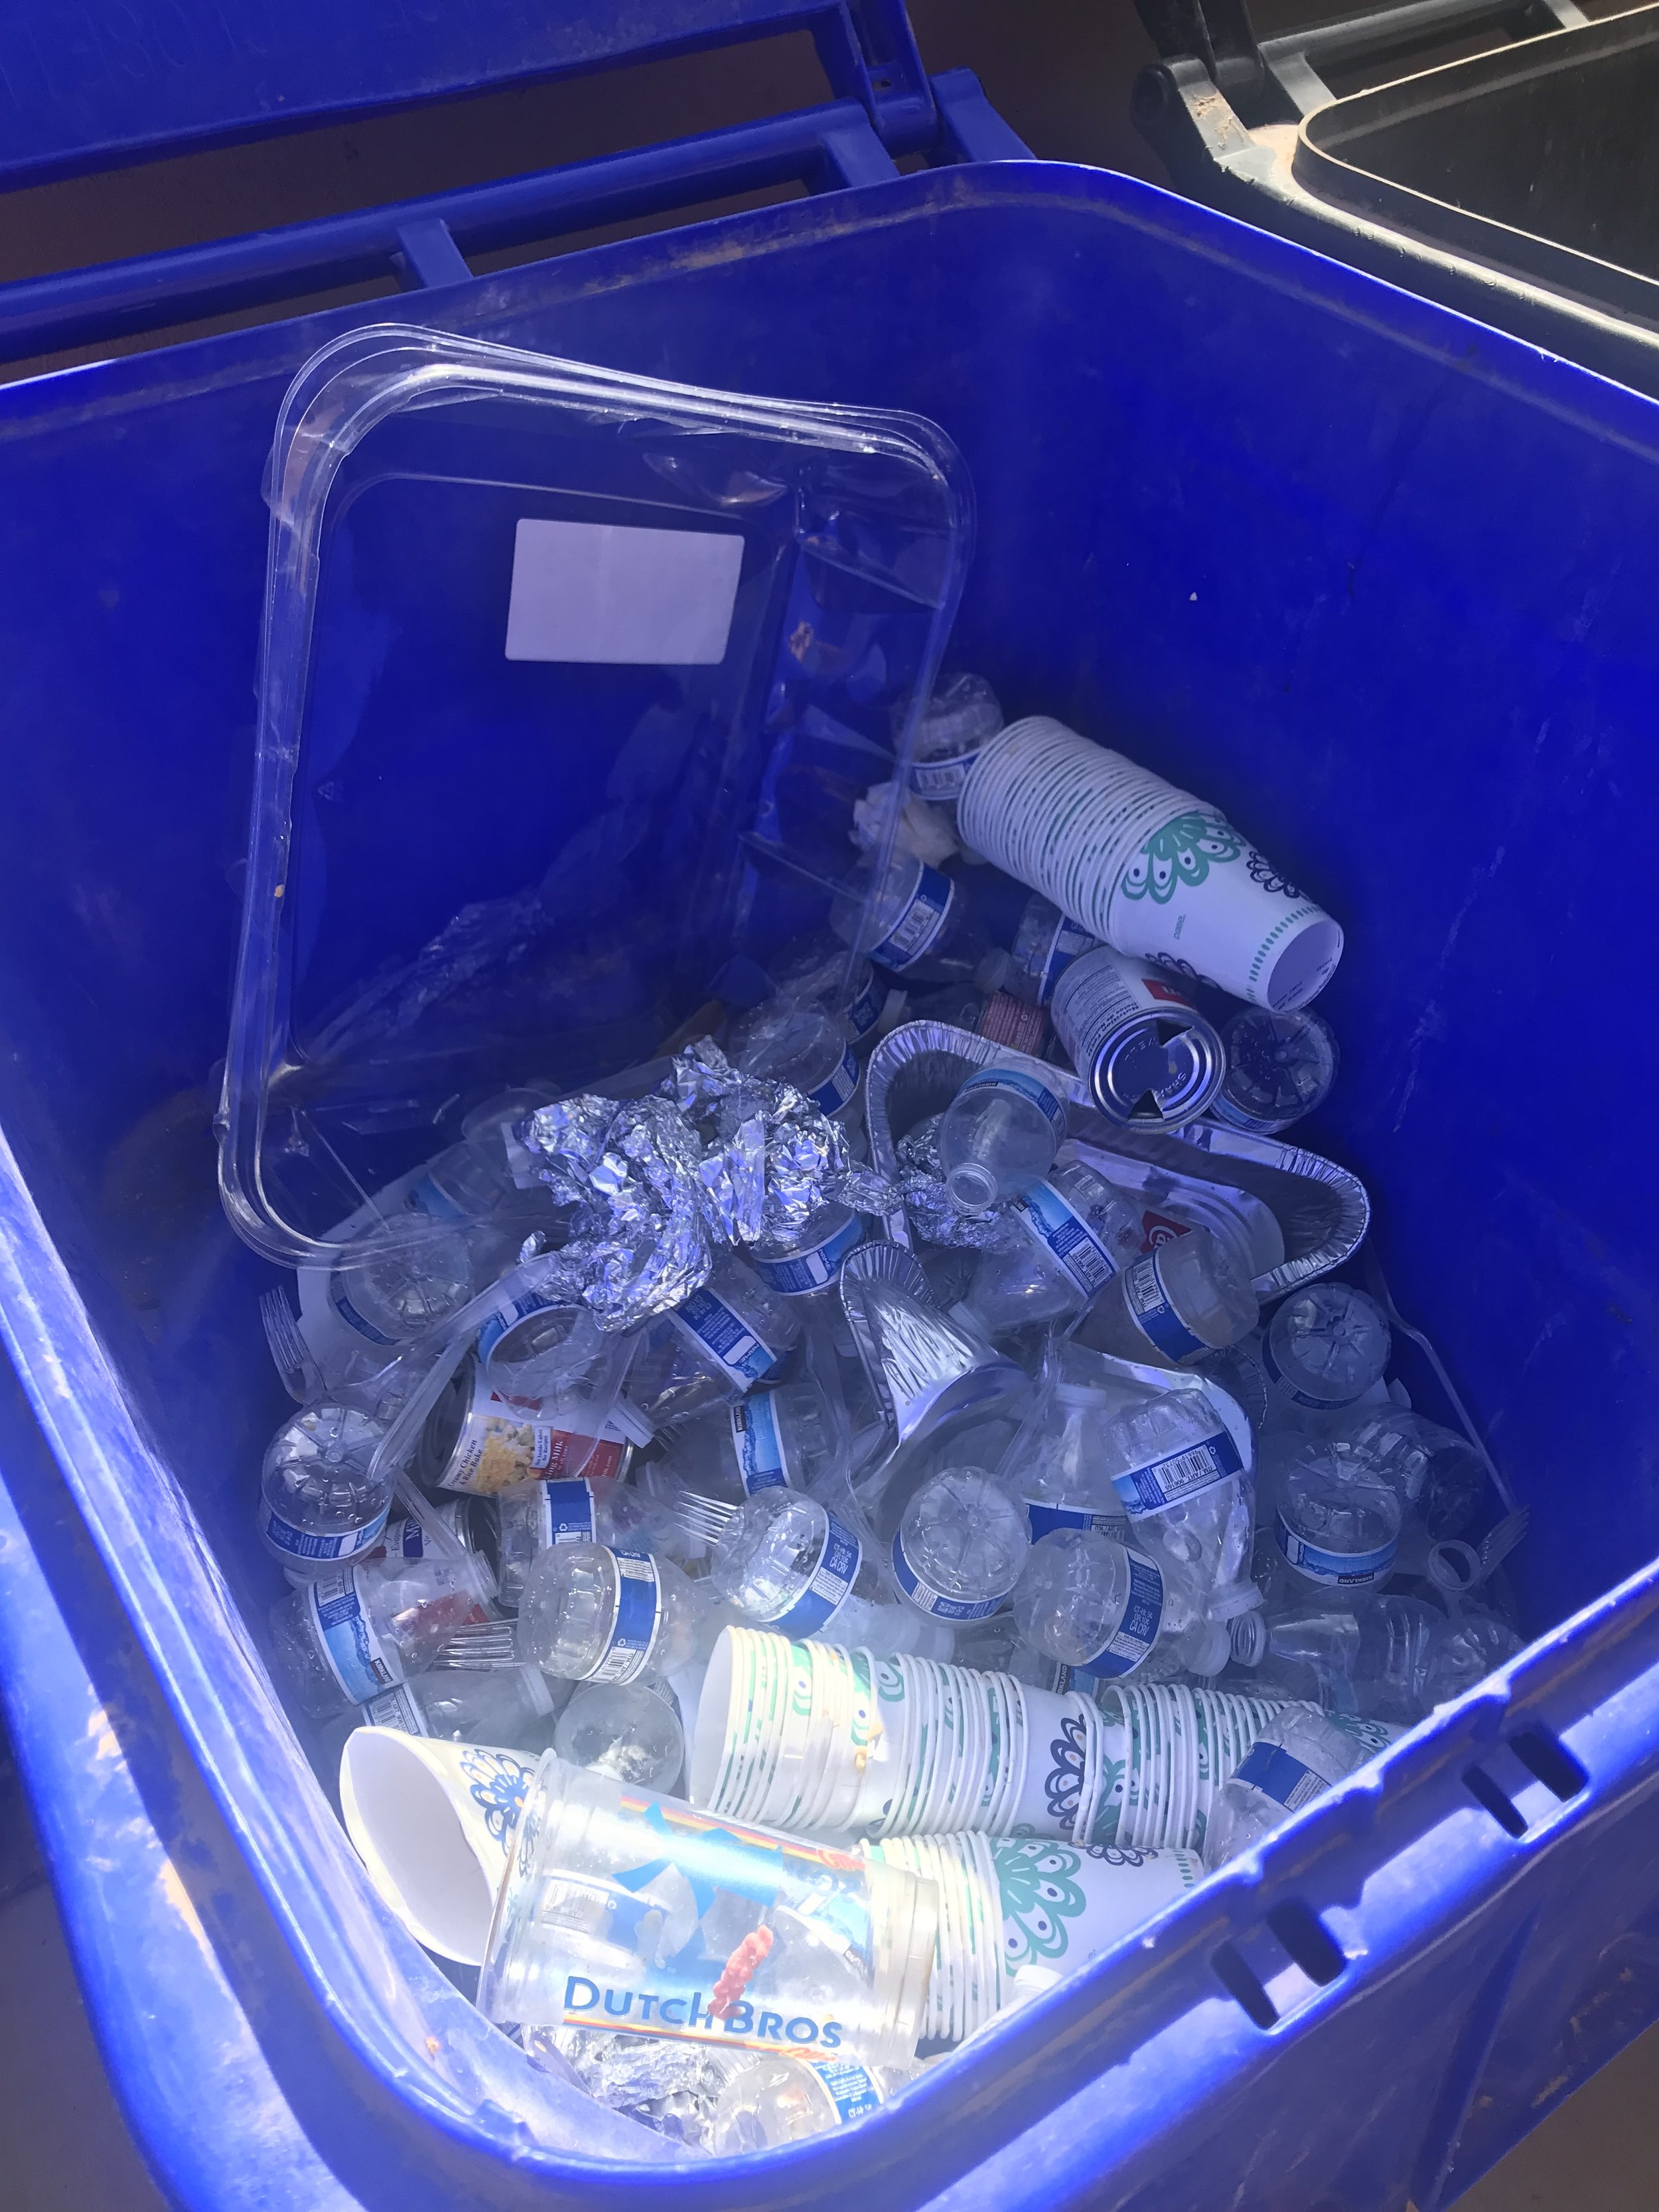 This was completely filled with recycling by the time we finished sorting